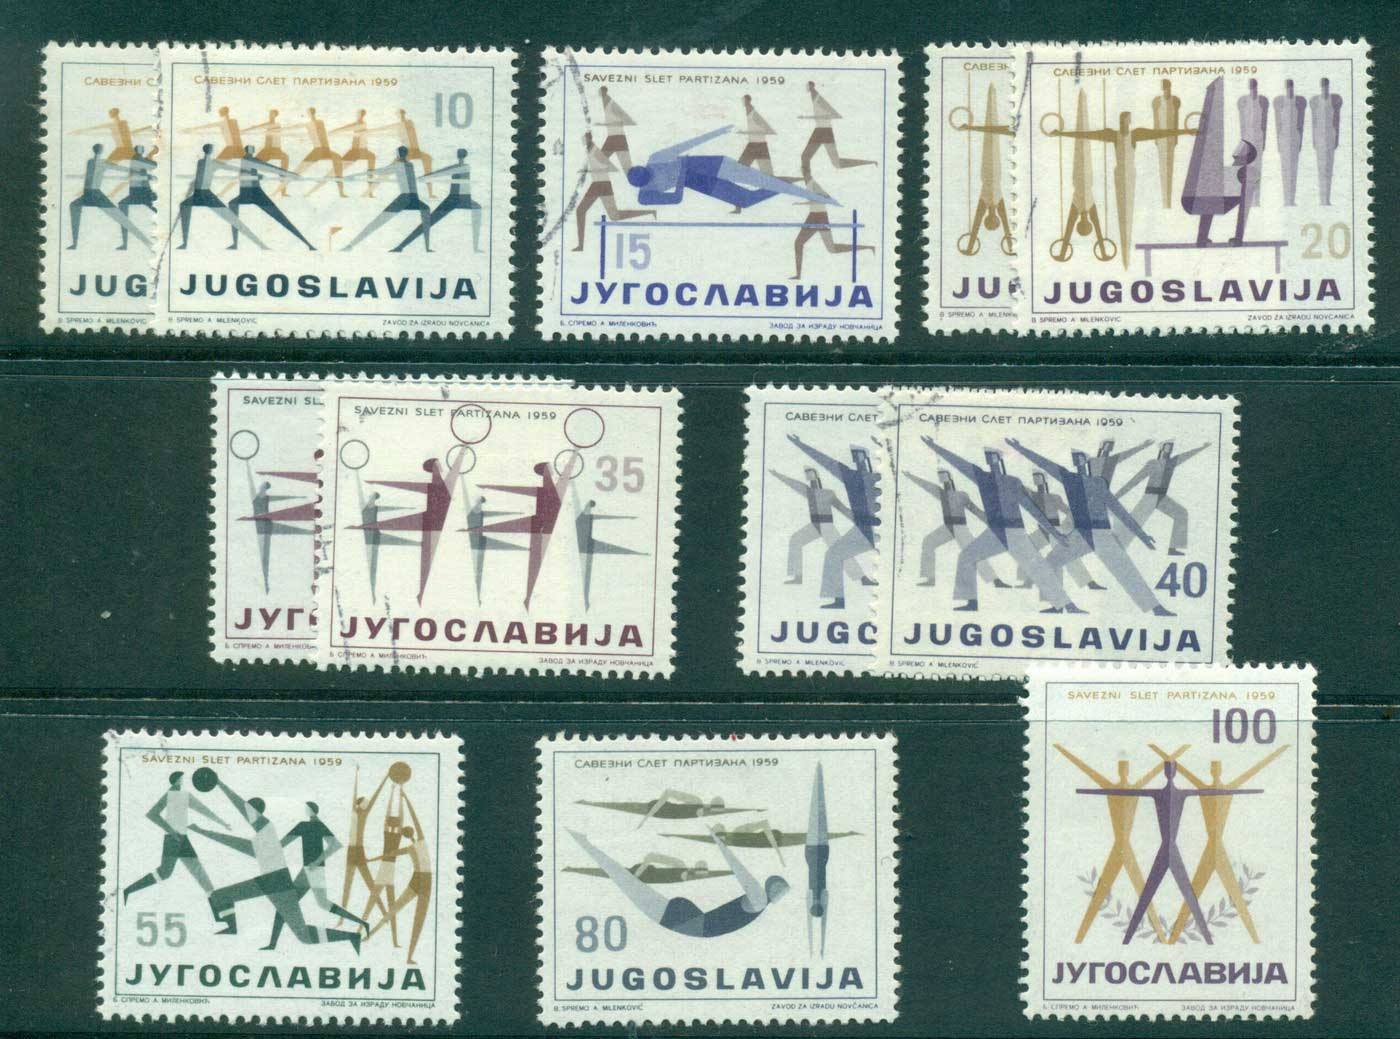 Yugoslavia 1959 Olympic Sports Asst MLH/FU lot40483